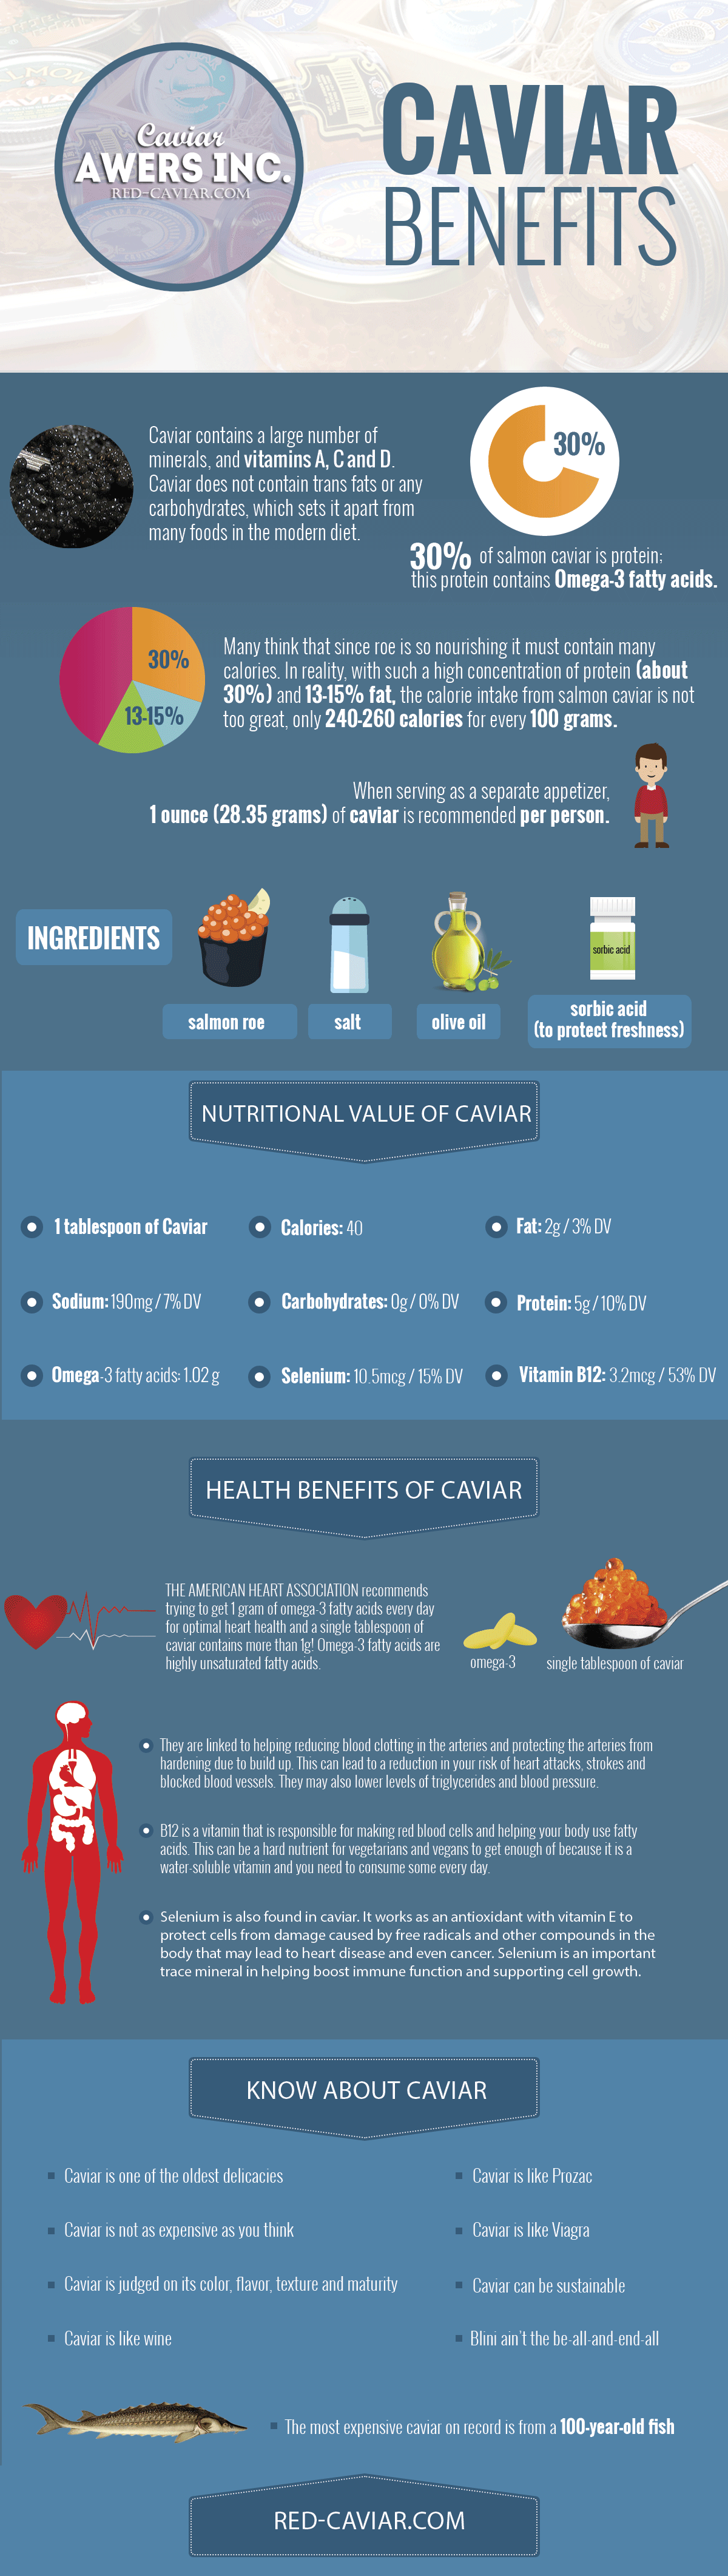 caviar-benefits-infographic